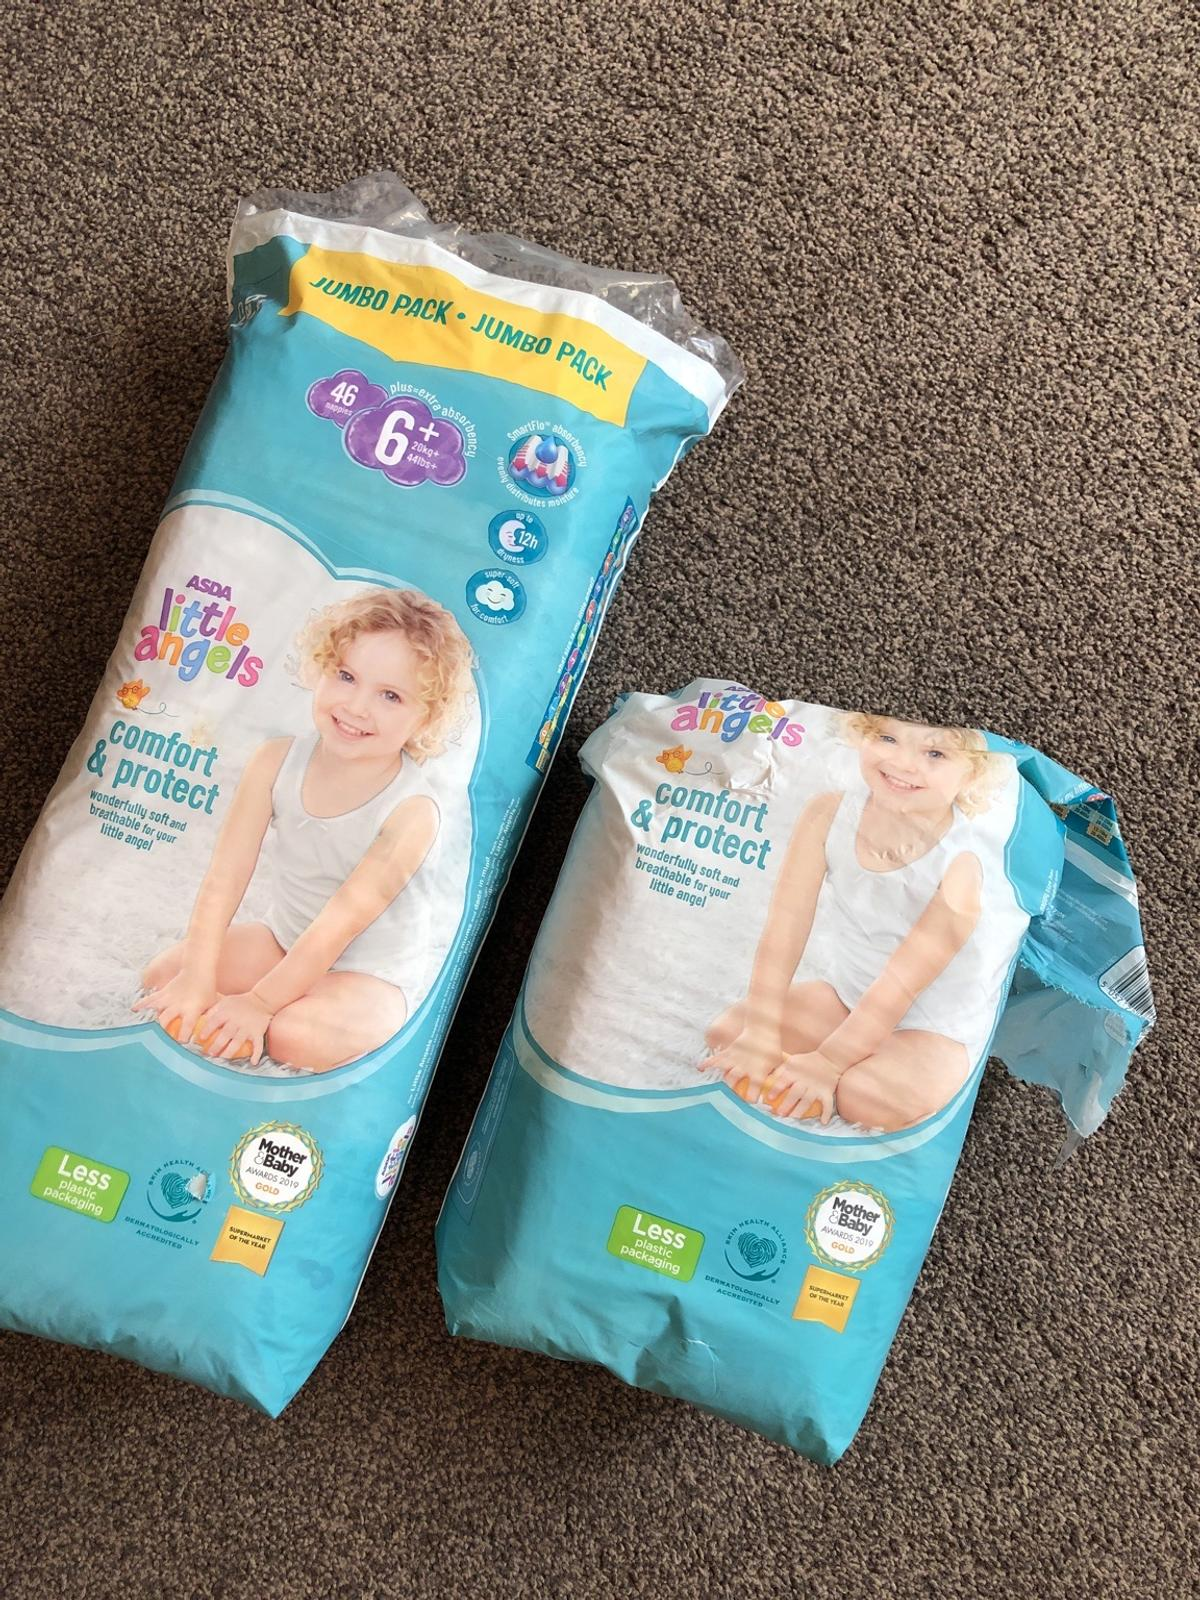 Little angel nappies size 6 and 6+.